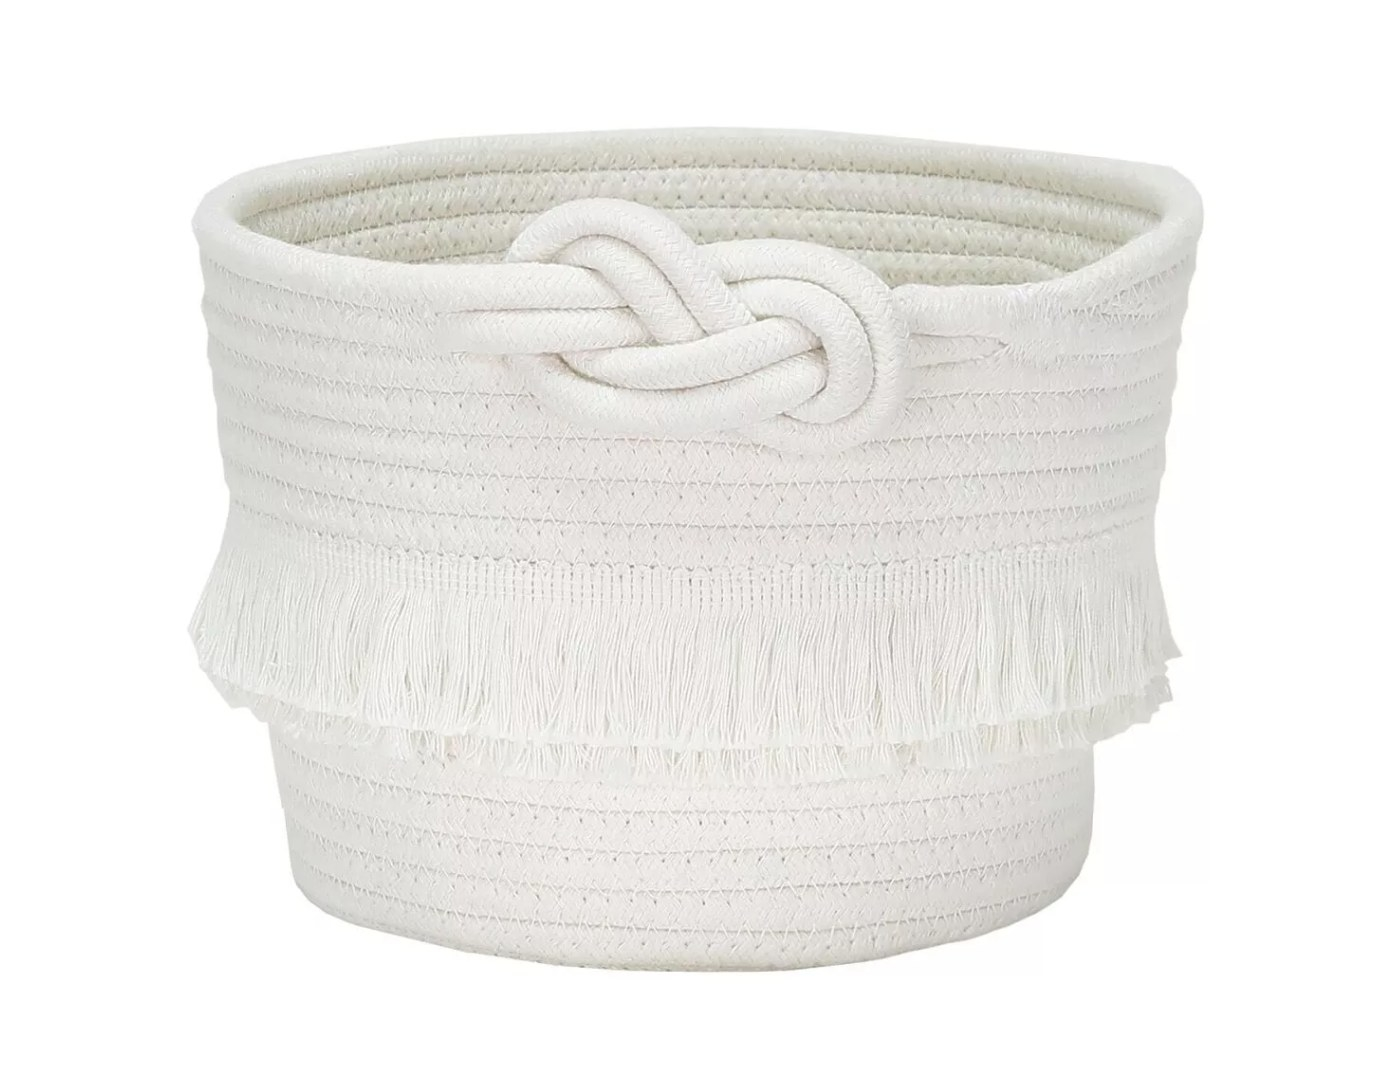 A white storage basket with an ornamental rope knot